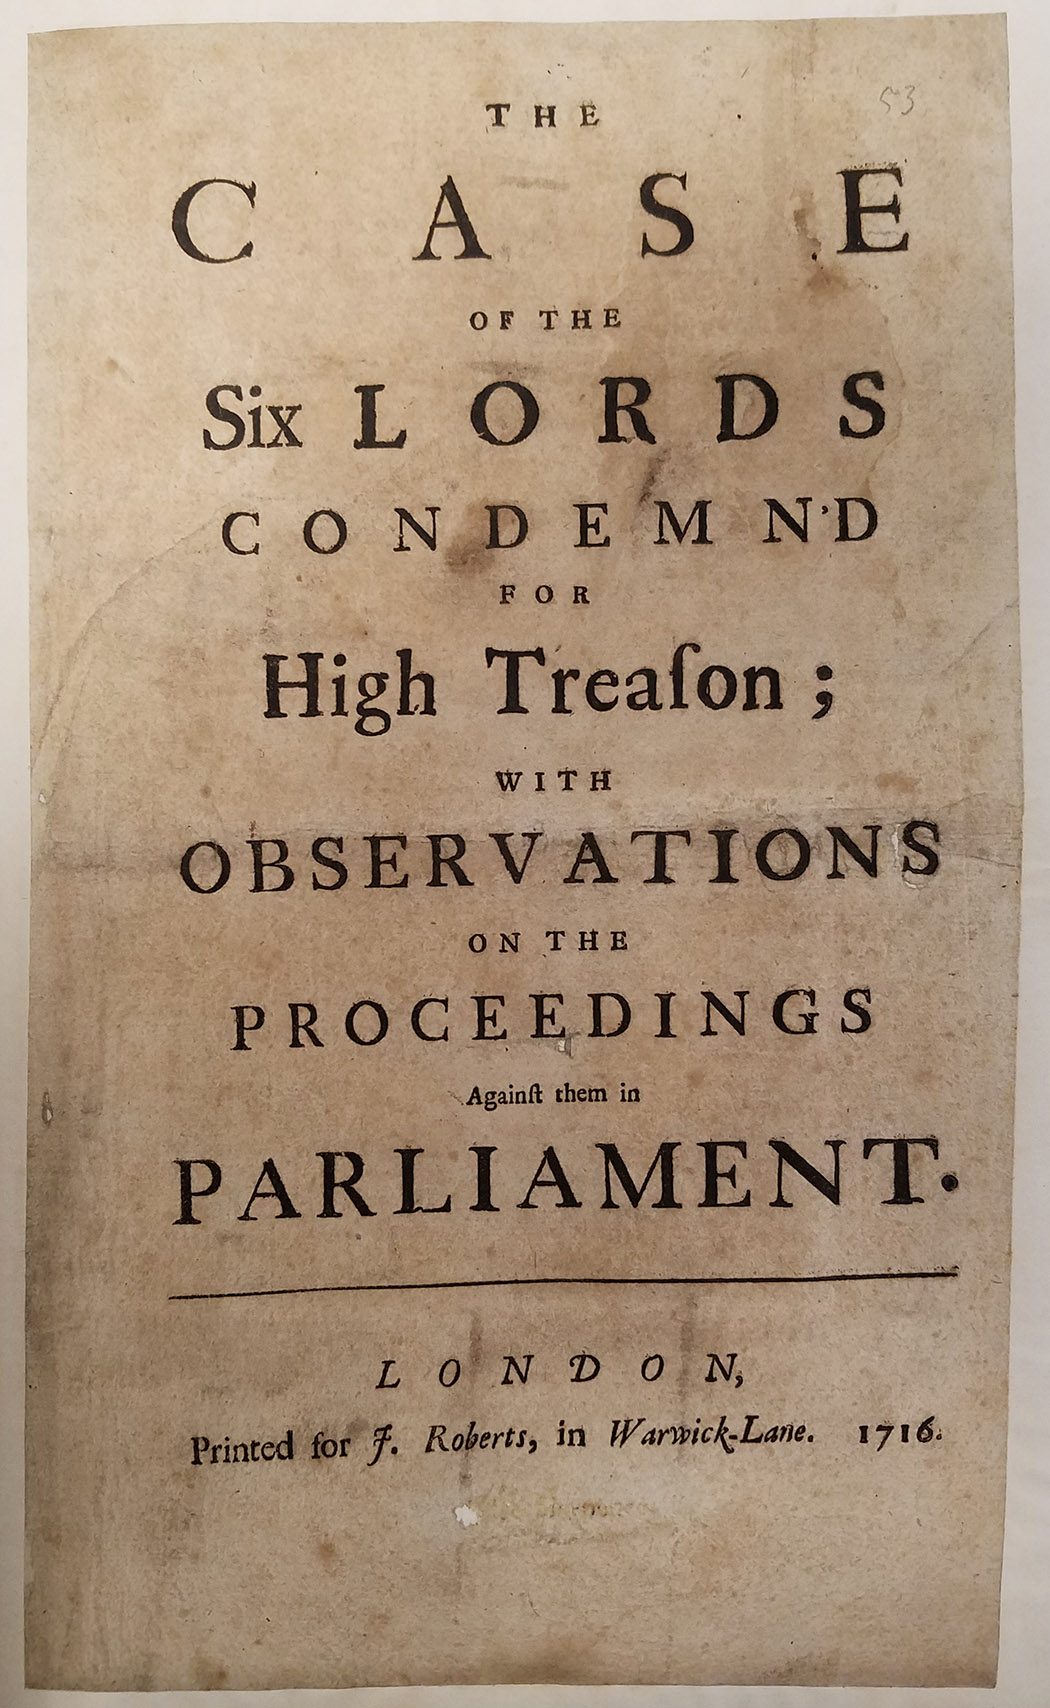 Image of The case of the six lords condemned for high treason